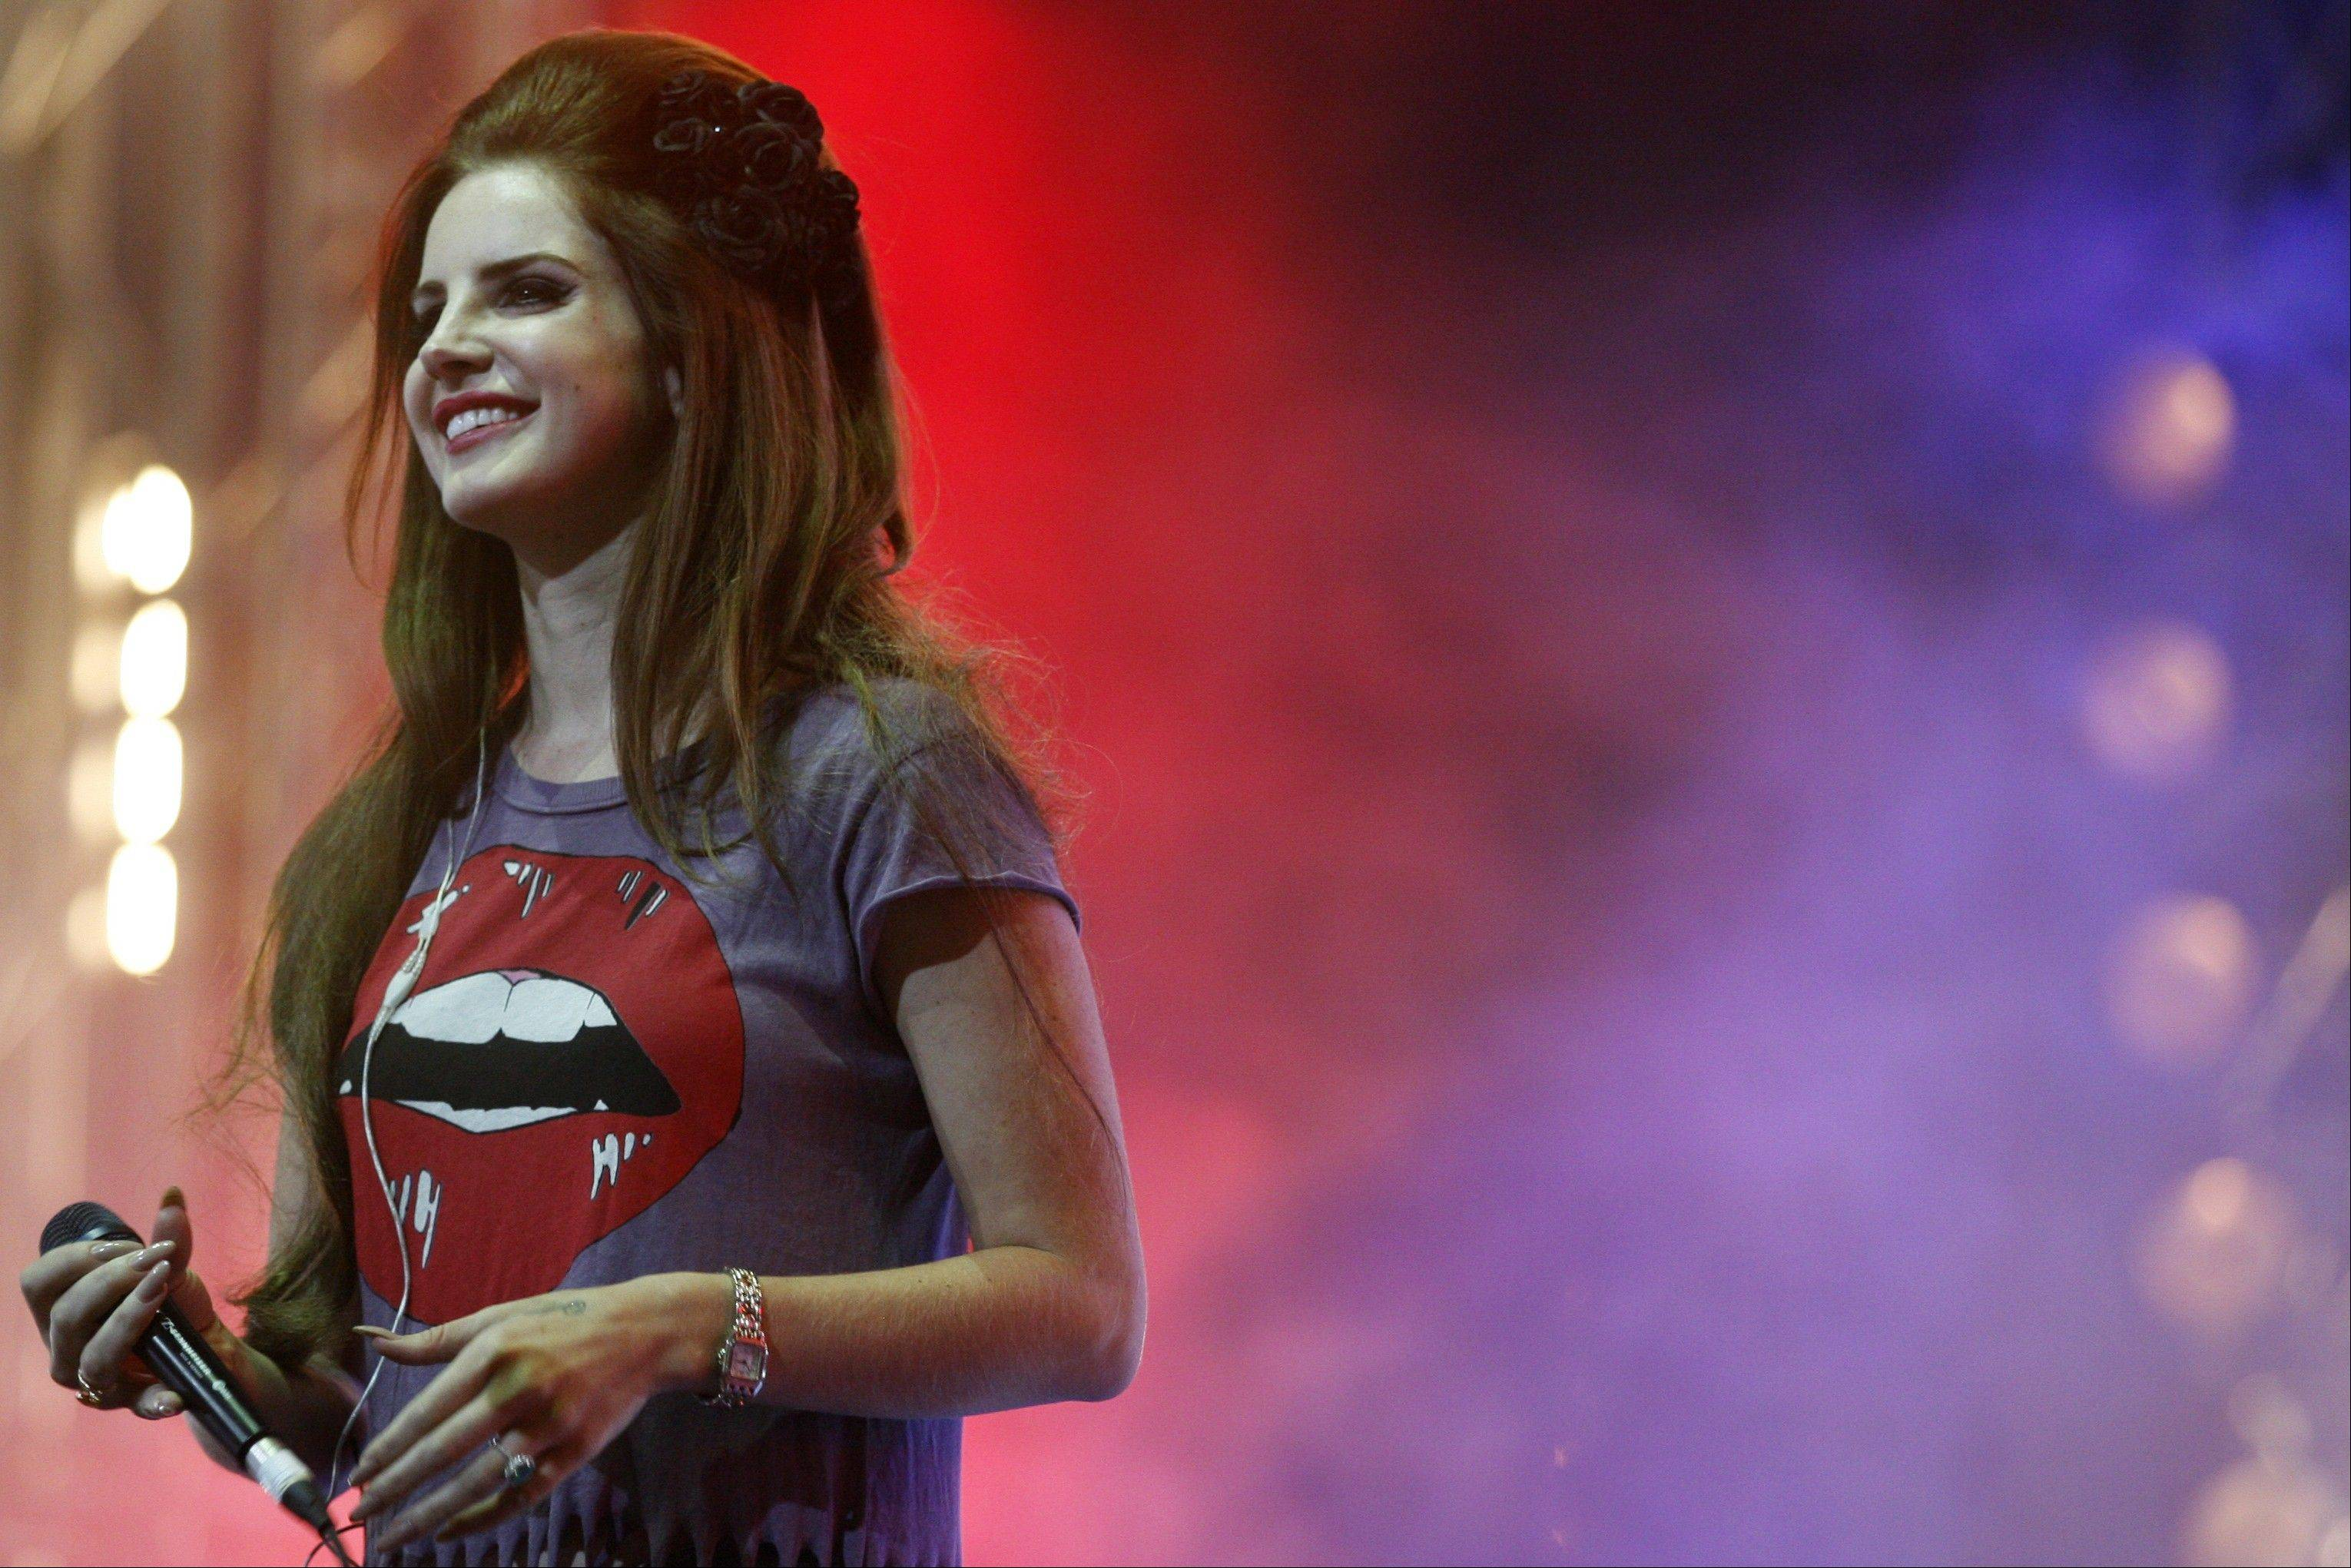 Singer Lana Del Rey will close out the first day of Lollapalooza festivities with a Friday night set.